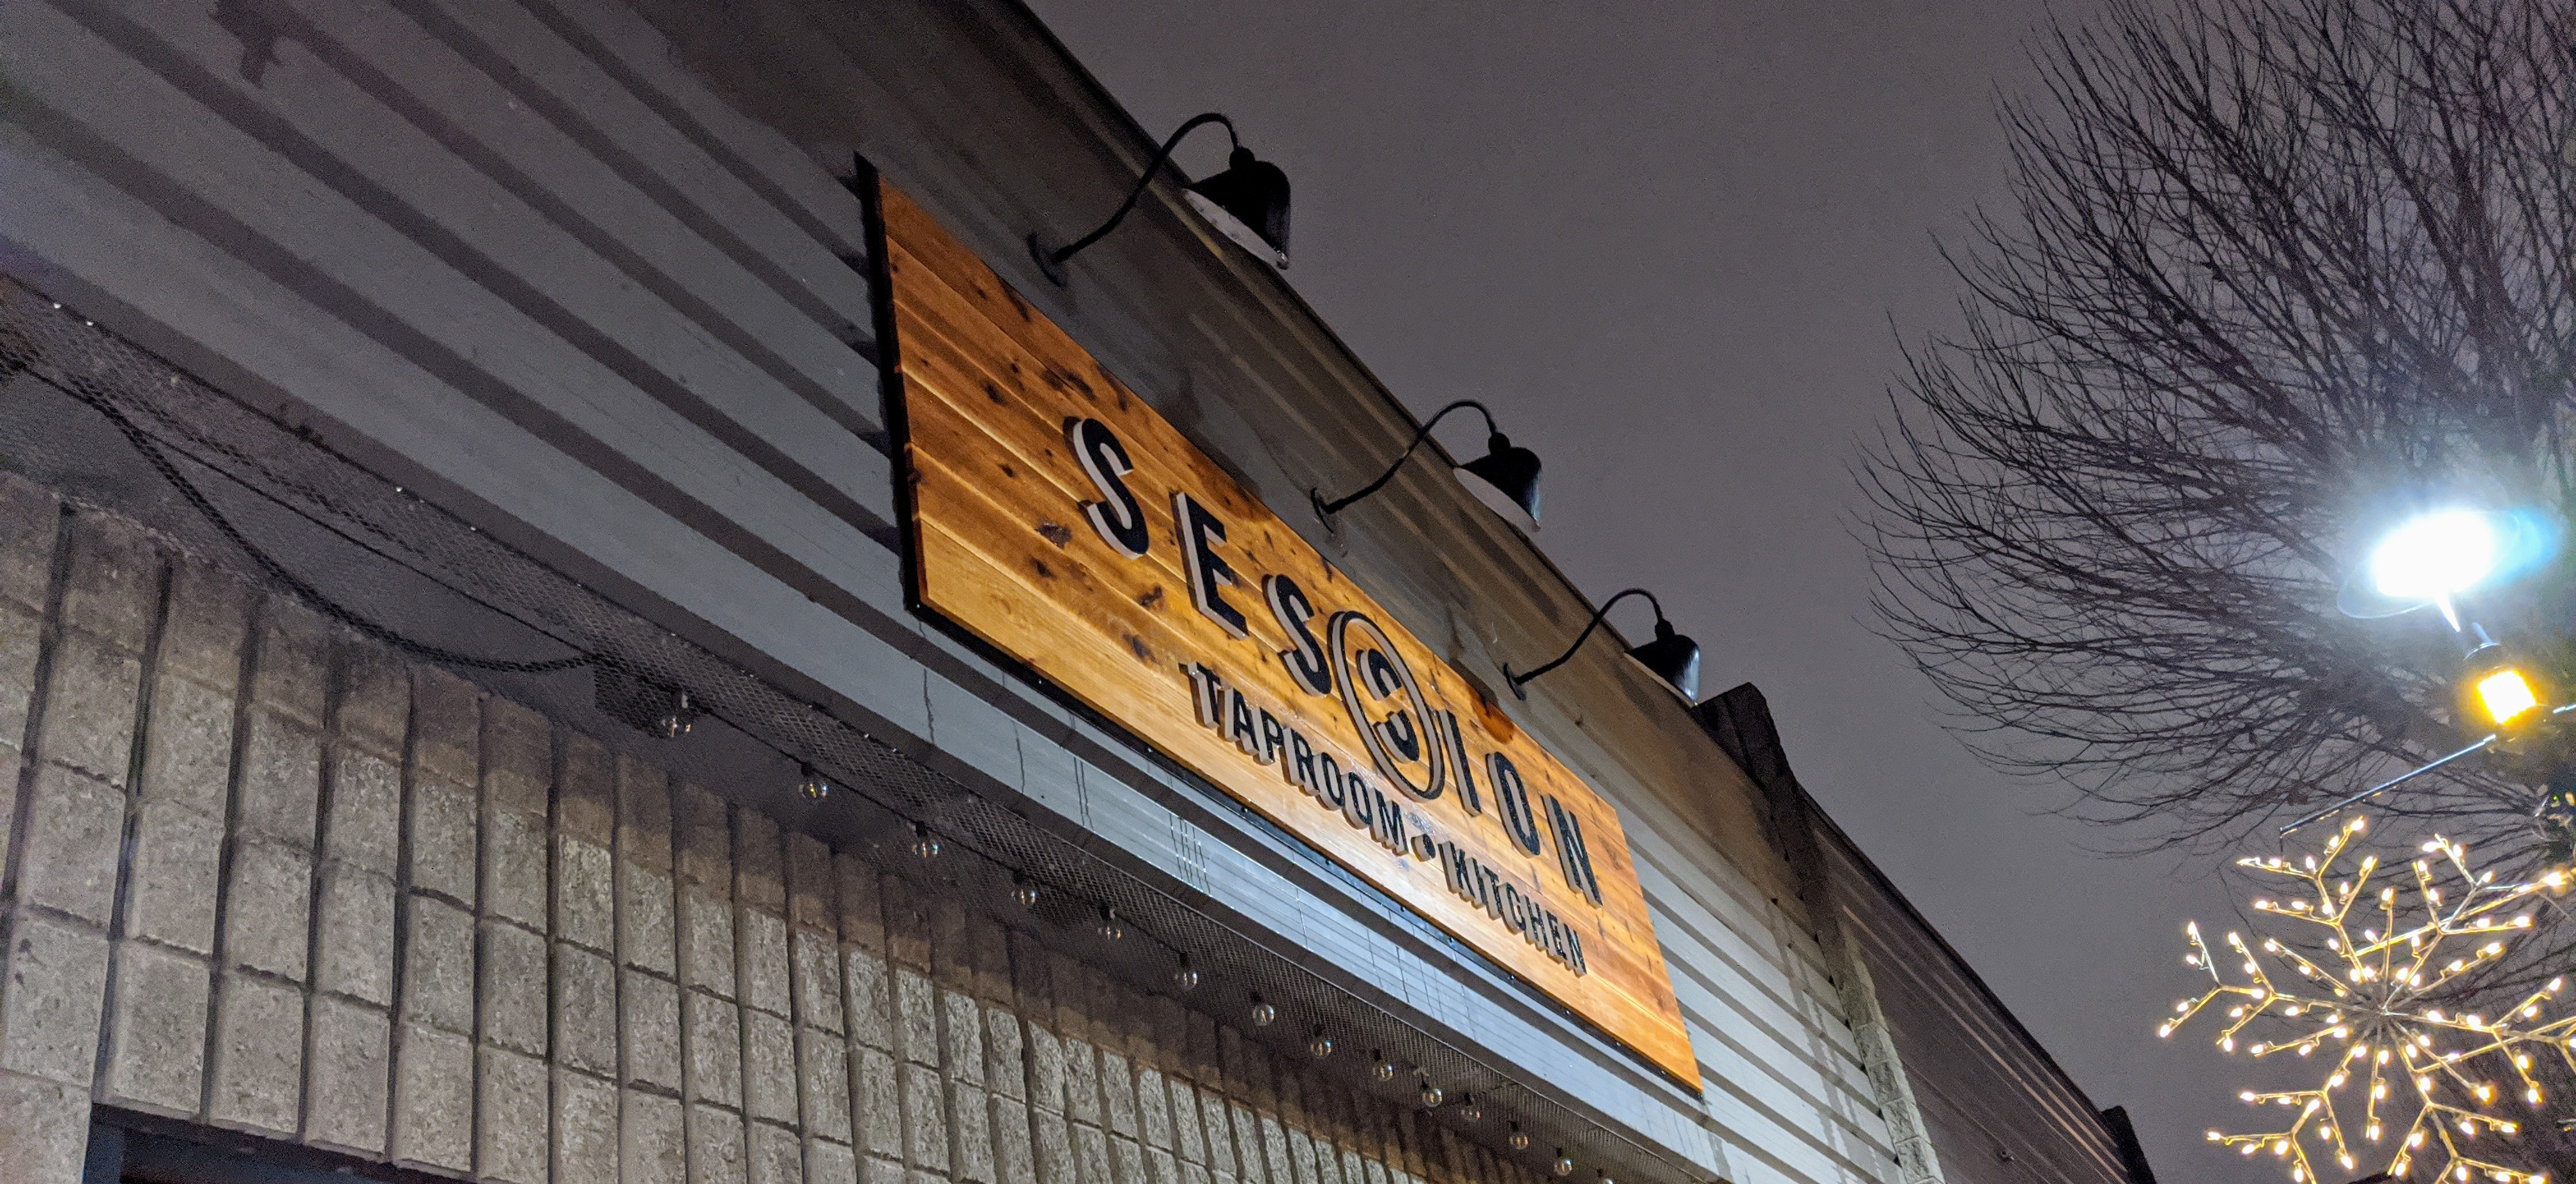 Session Taproom and Spin Sign